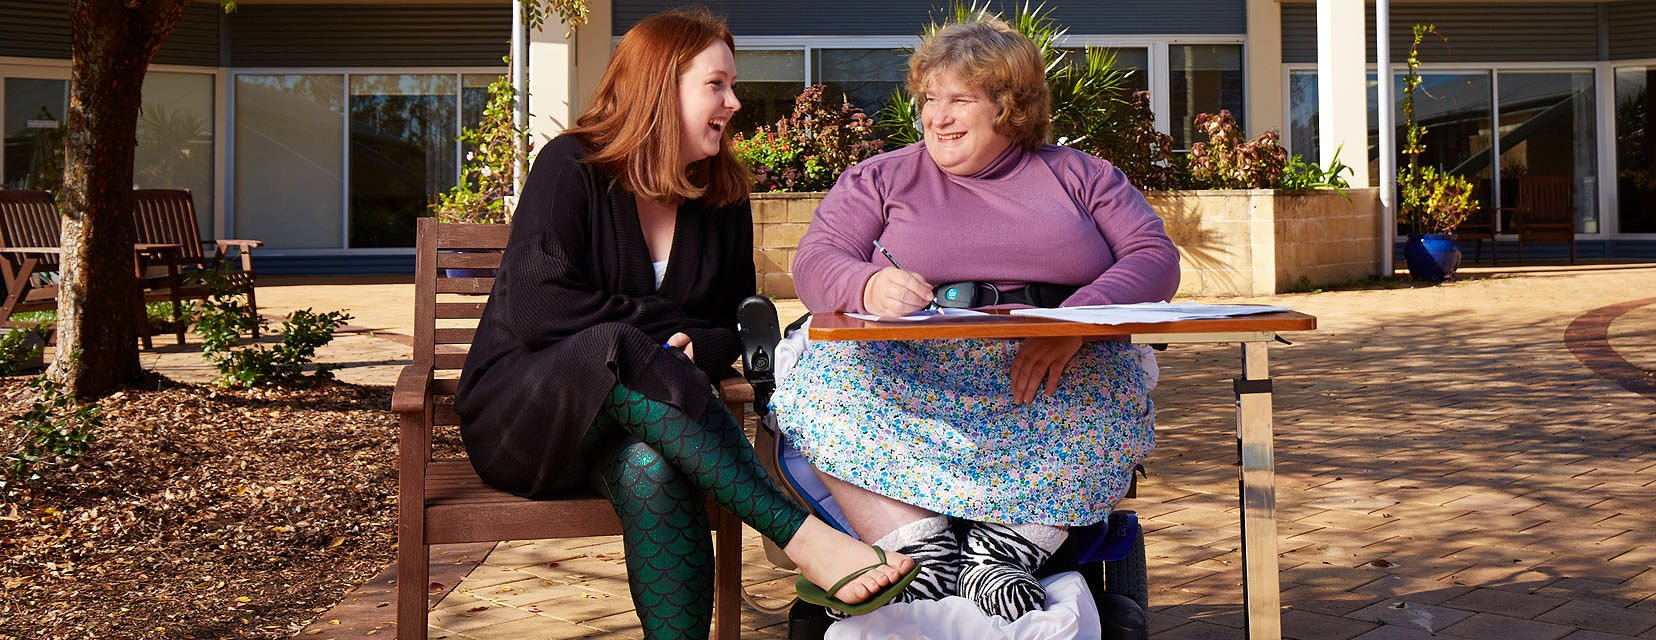 NDIS pre-planning customer with an Aruma Disability Support worker